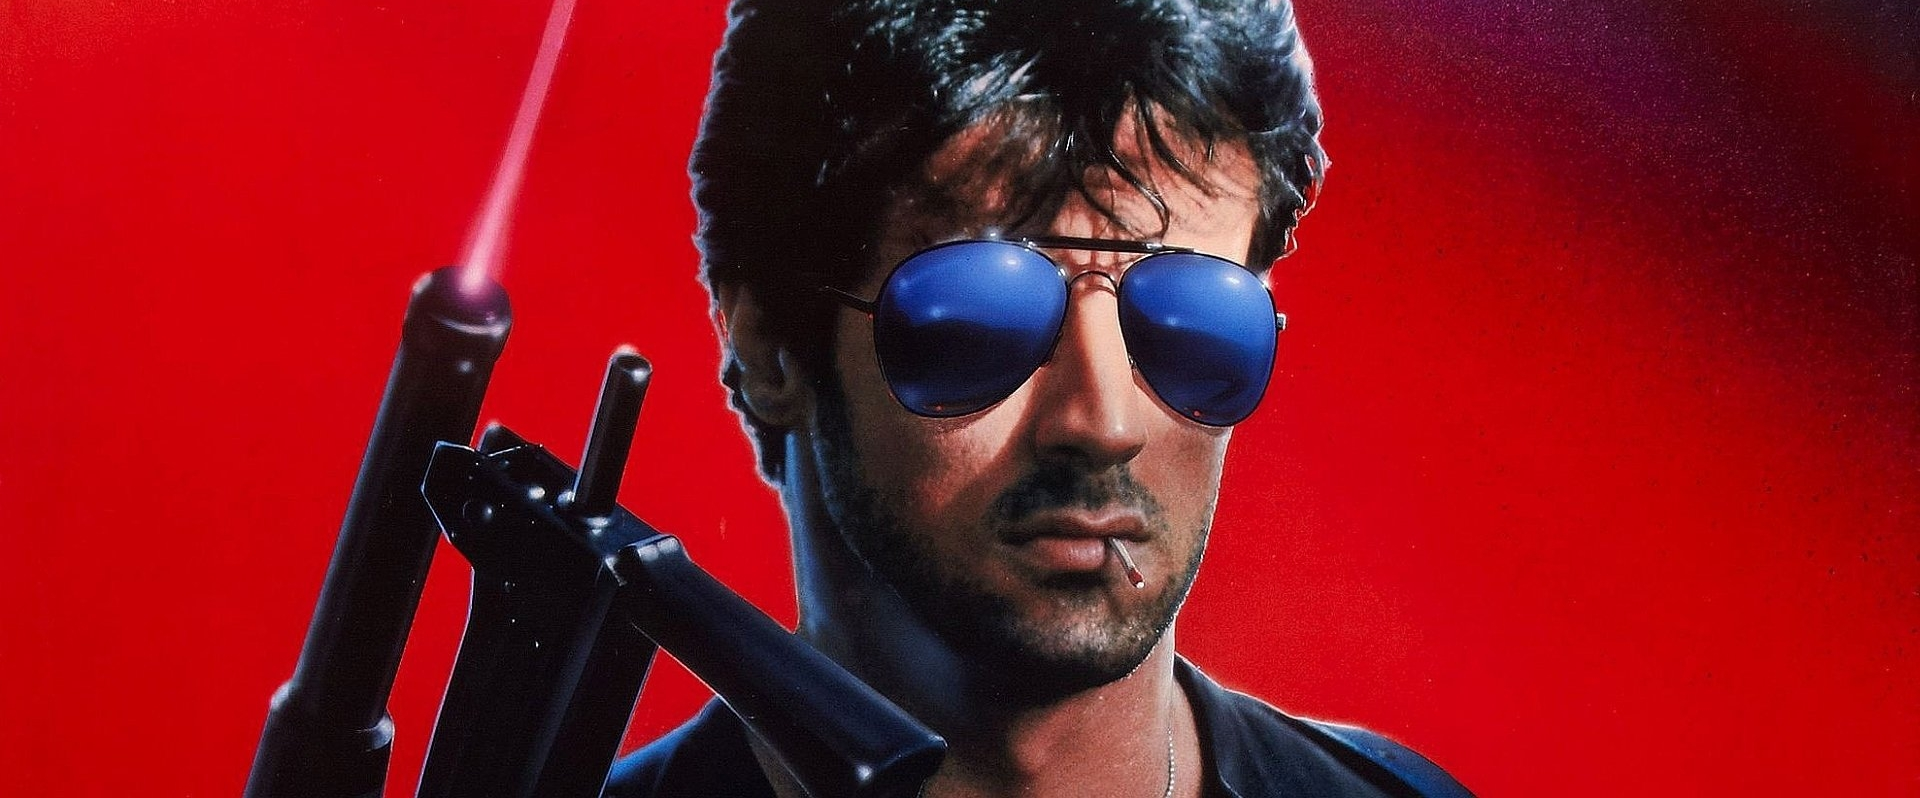 cobra, stallone, podcast, 1986